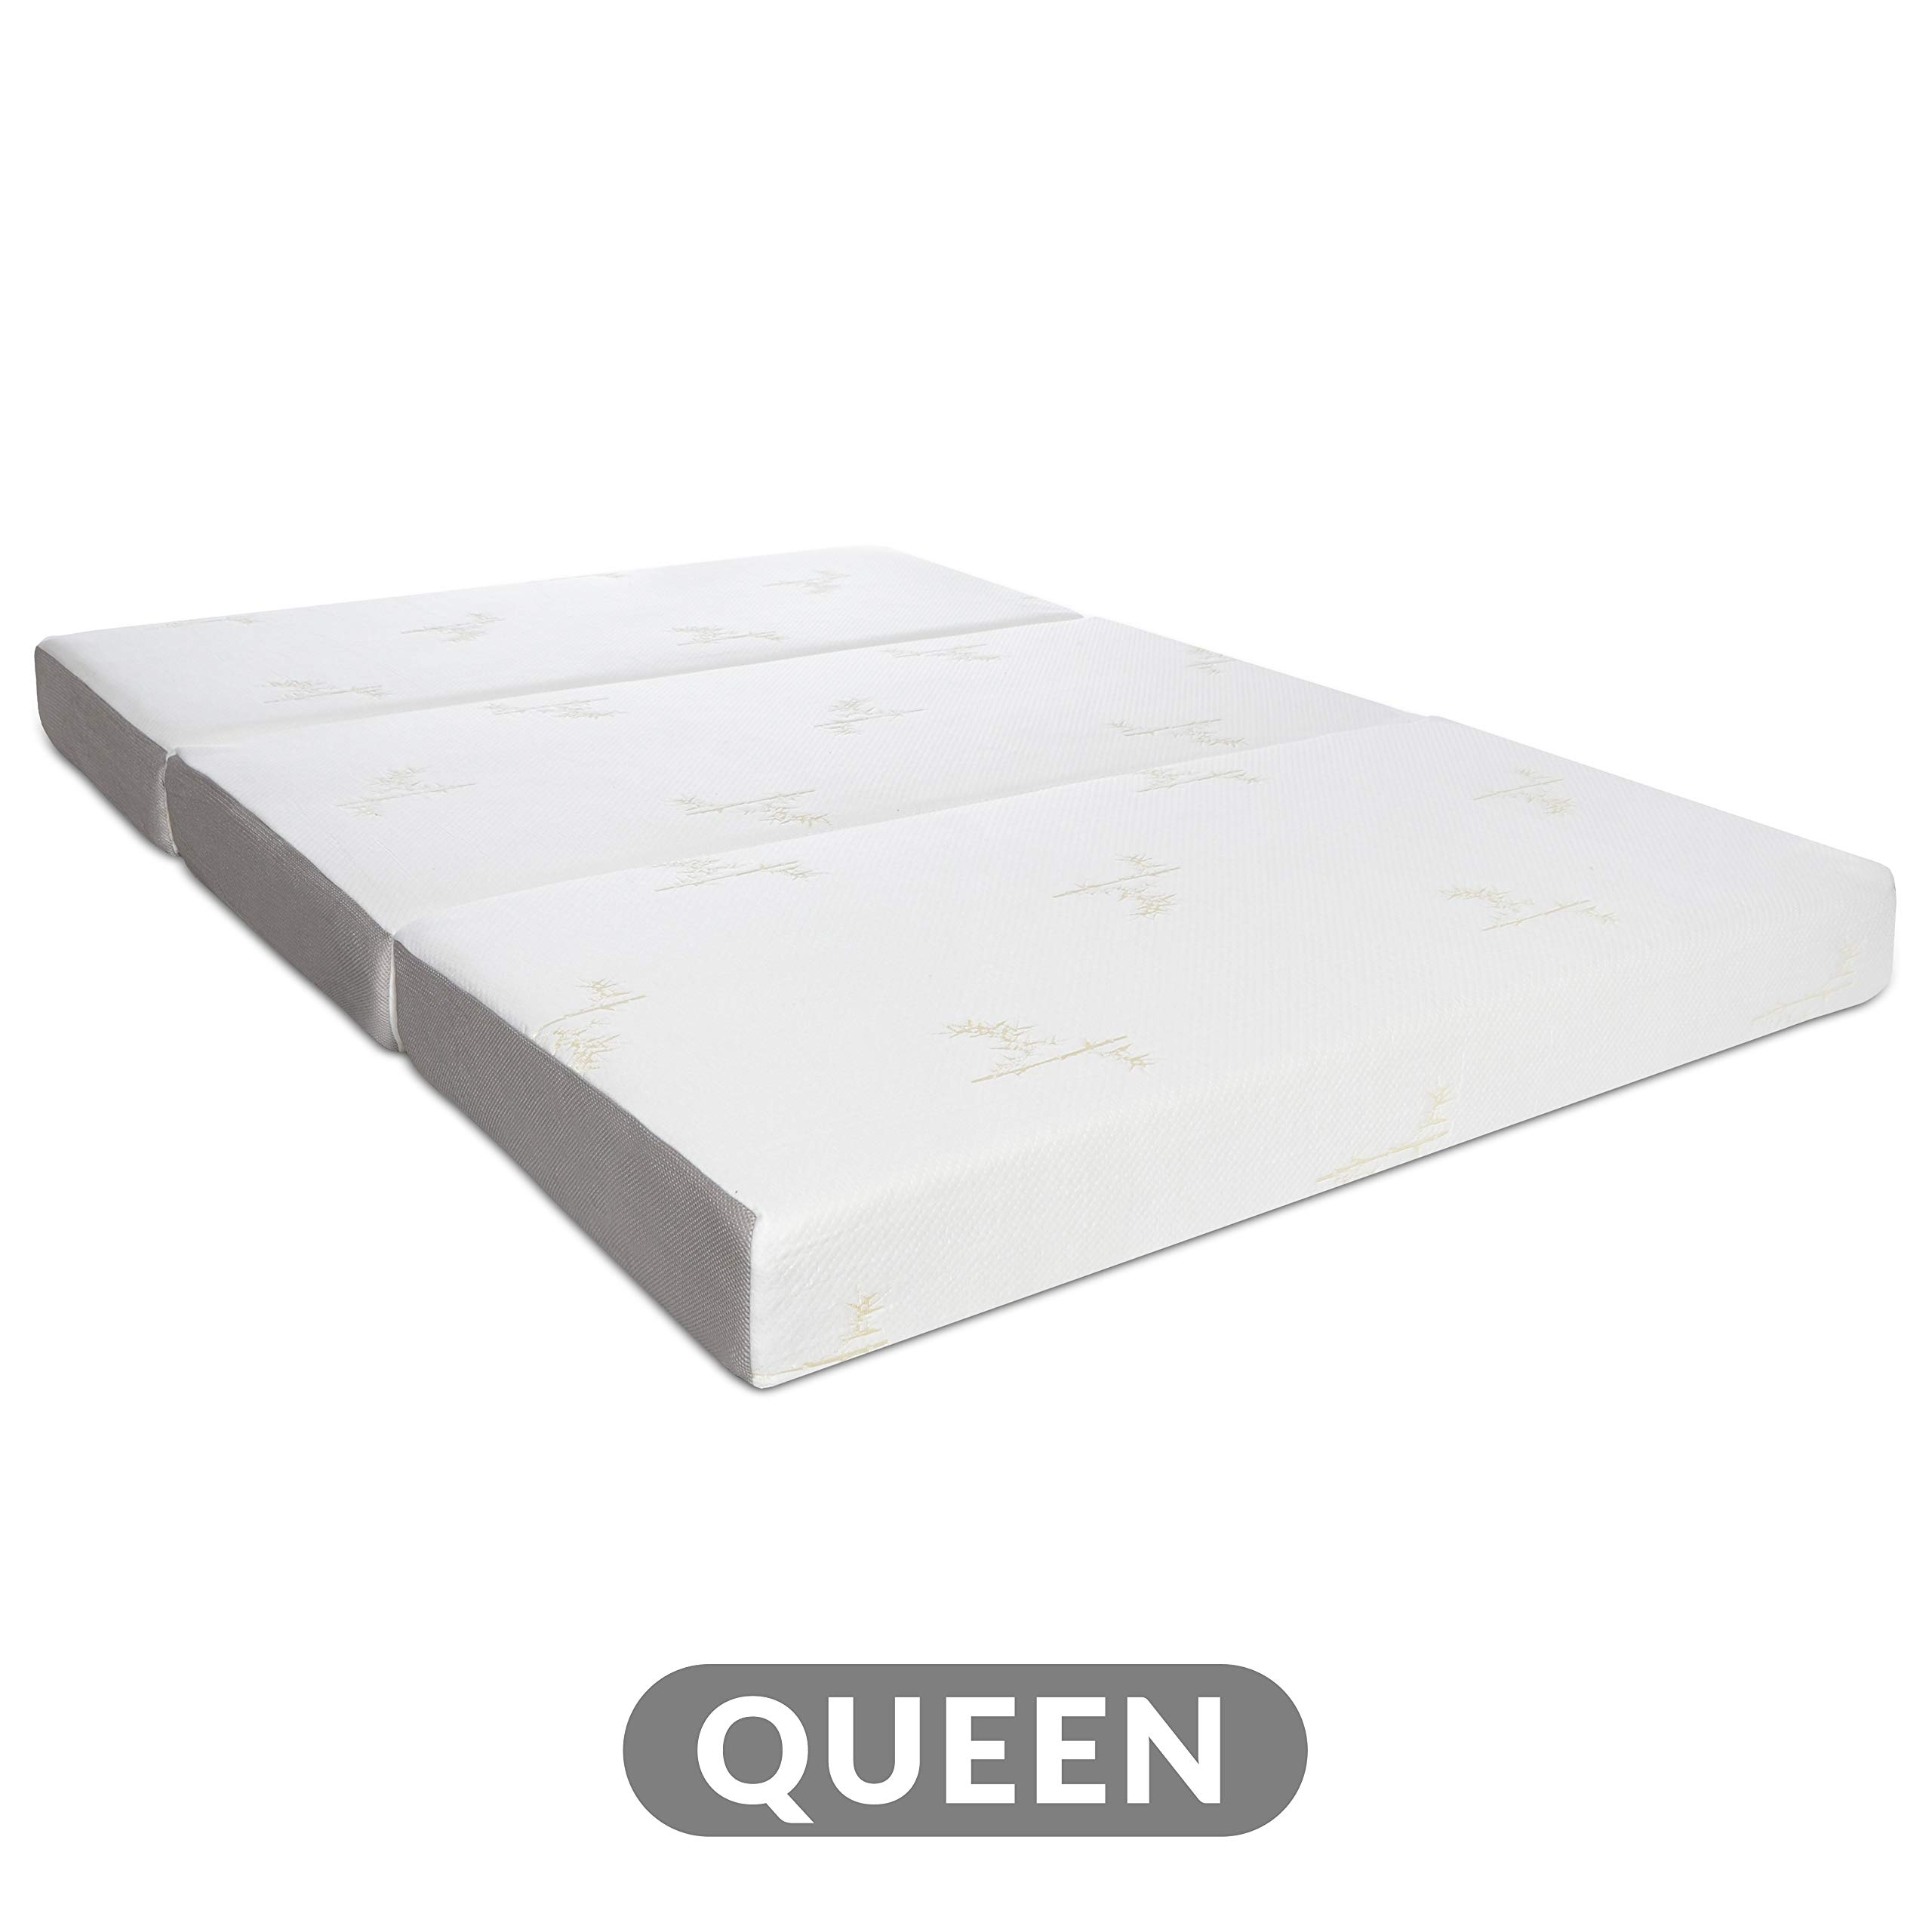 Milliard Tri Folding Memory Foam Mattress with Washable Cover Queen (78 inches x 58 inches x 6 inches) by Milliard